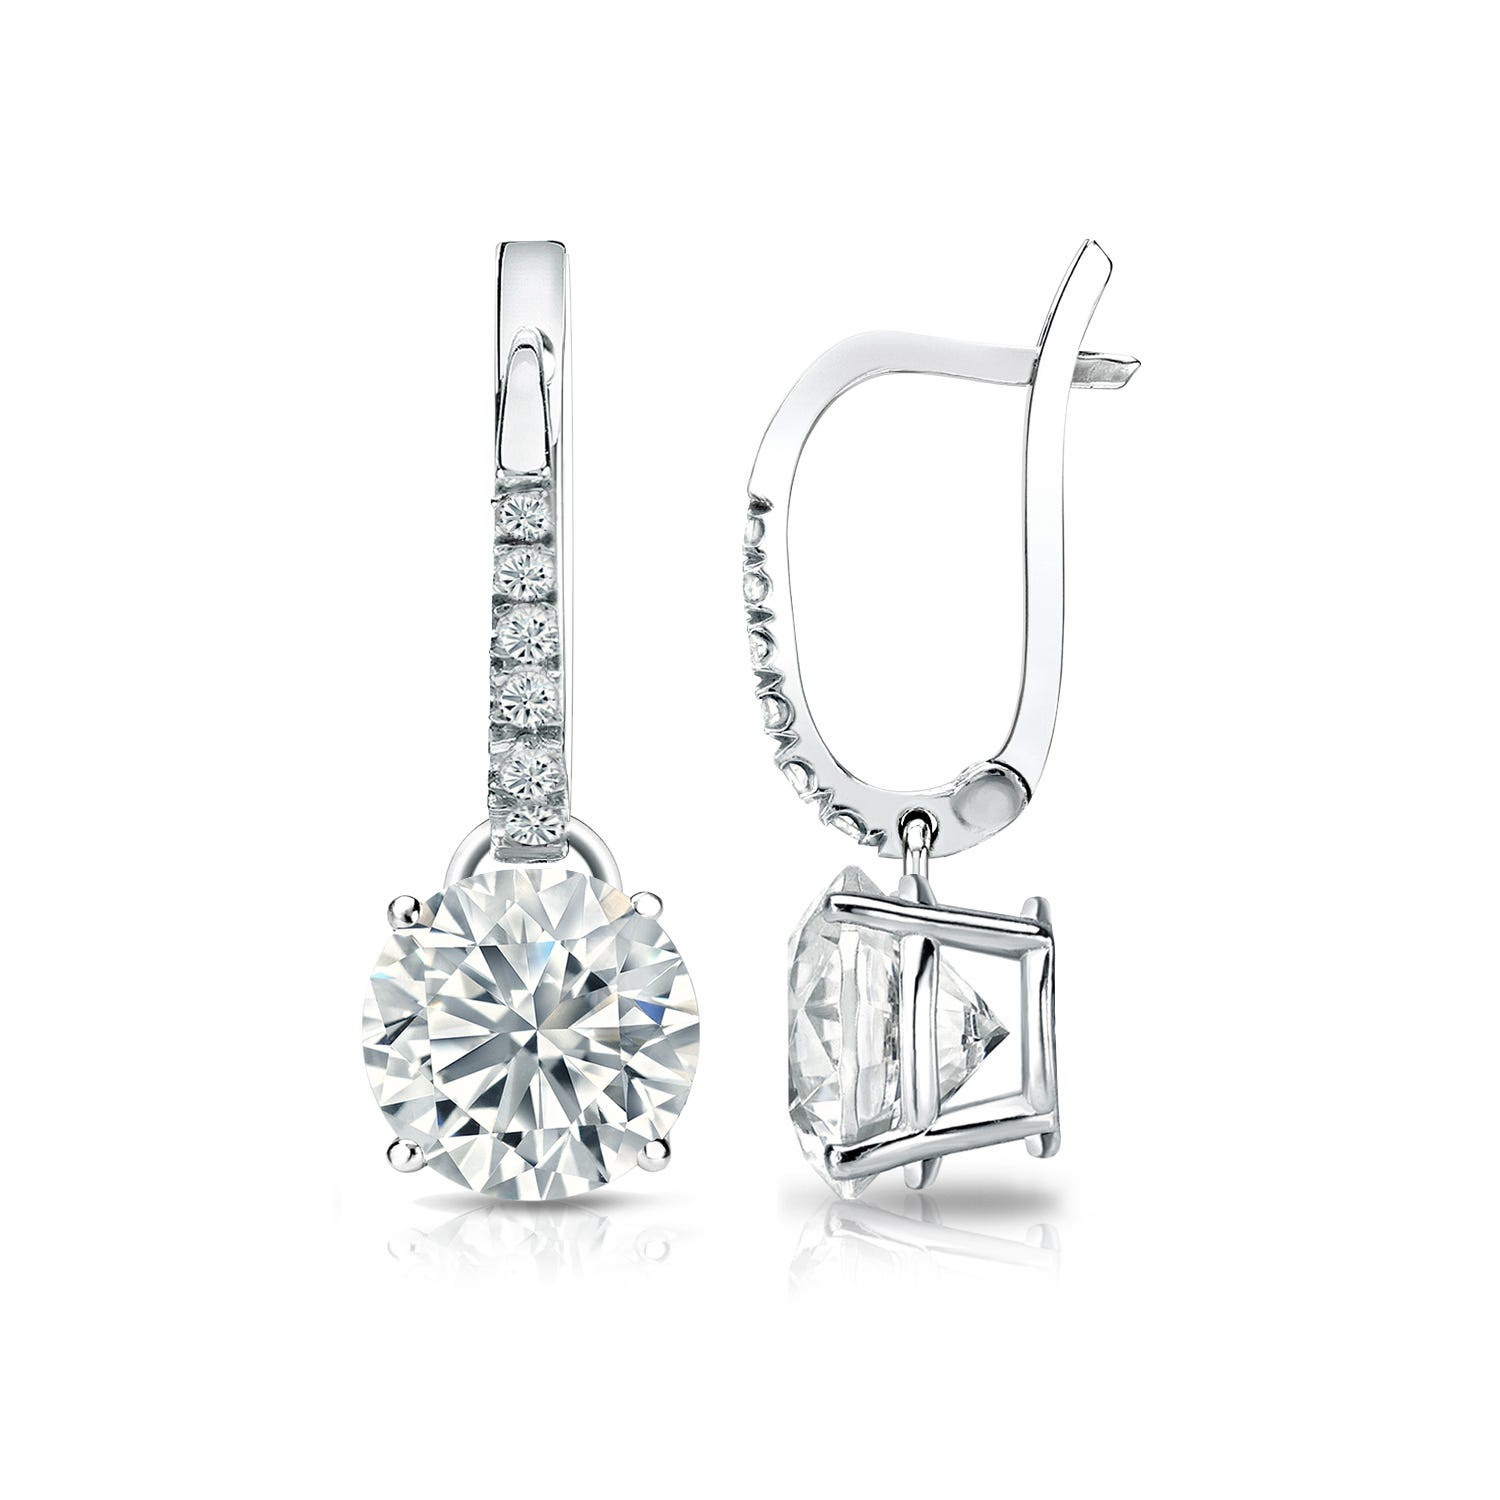 Diamond 2ctw. 4-Prong Round Drop Earrings in Platinum VS2 Clarity